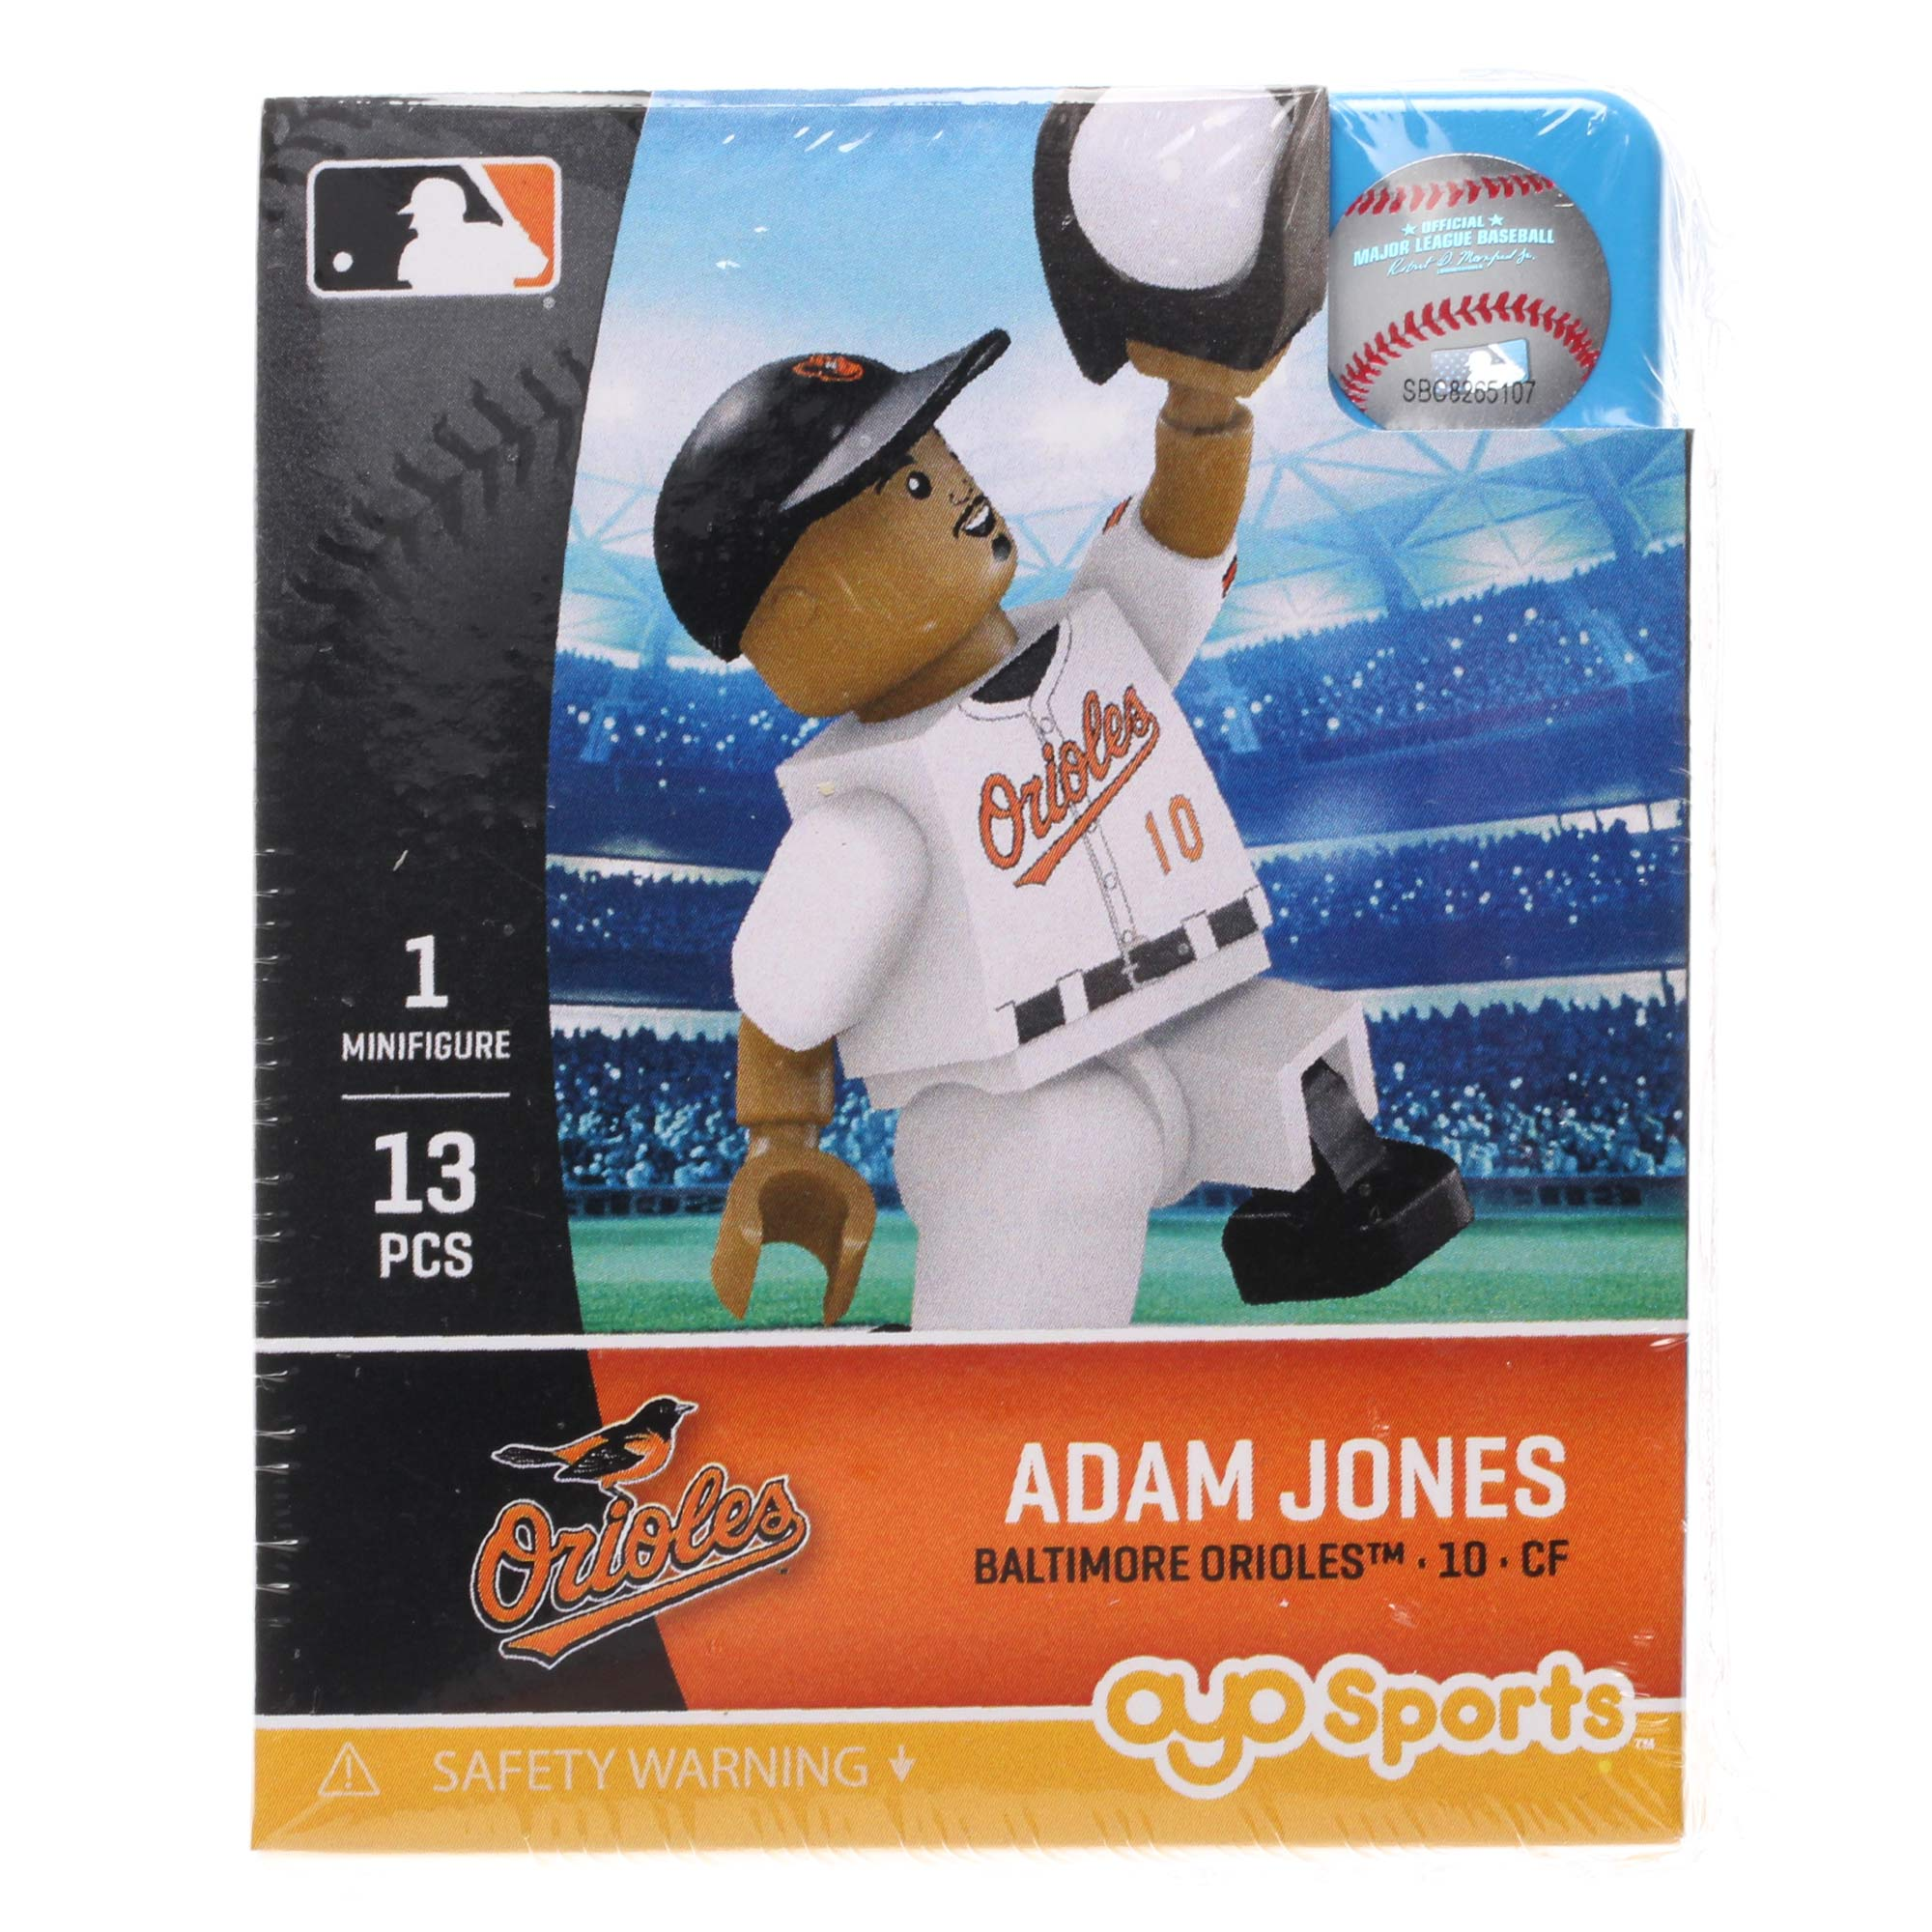 Adam Jones Baltimore Orioles OYO Sports Generation 5 Mini Figurine - No Size